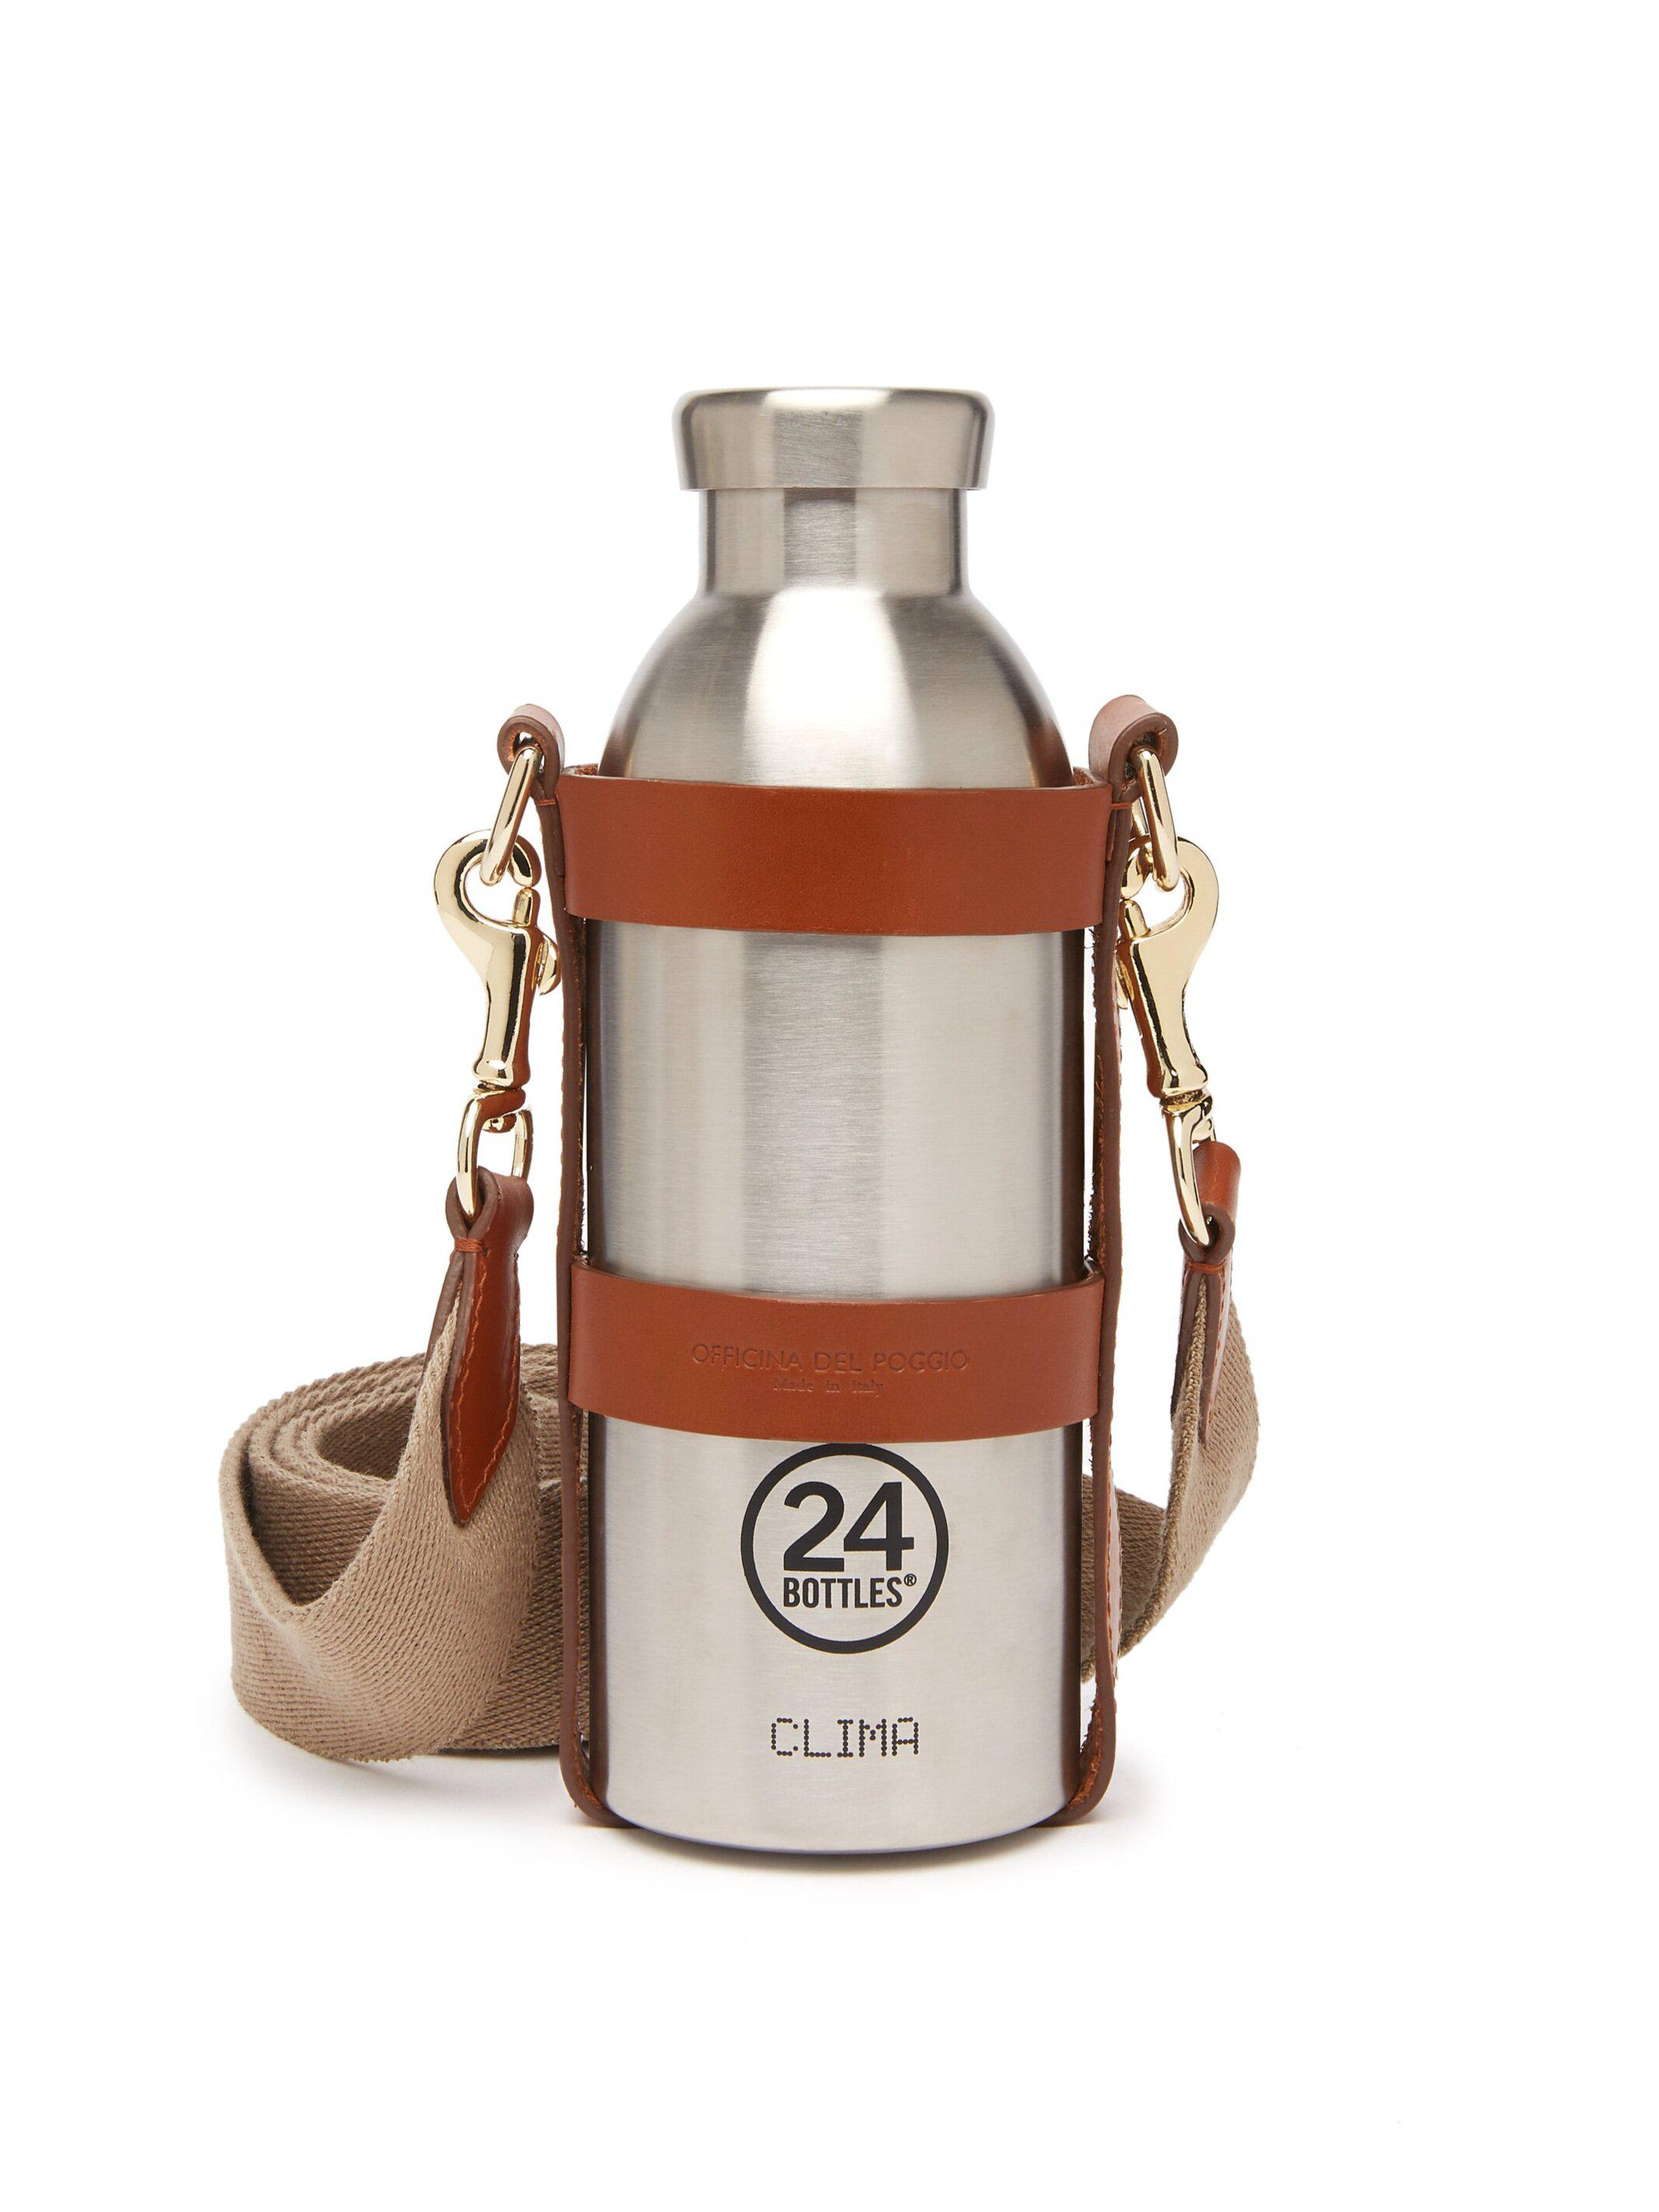 Bottle Bag with Bottle - Tan Leather